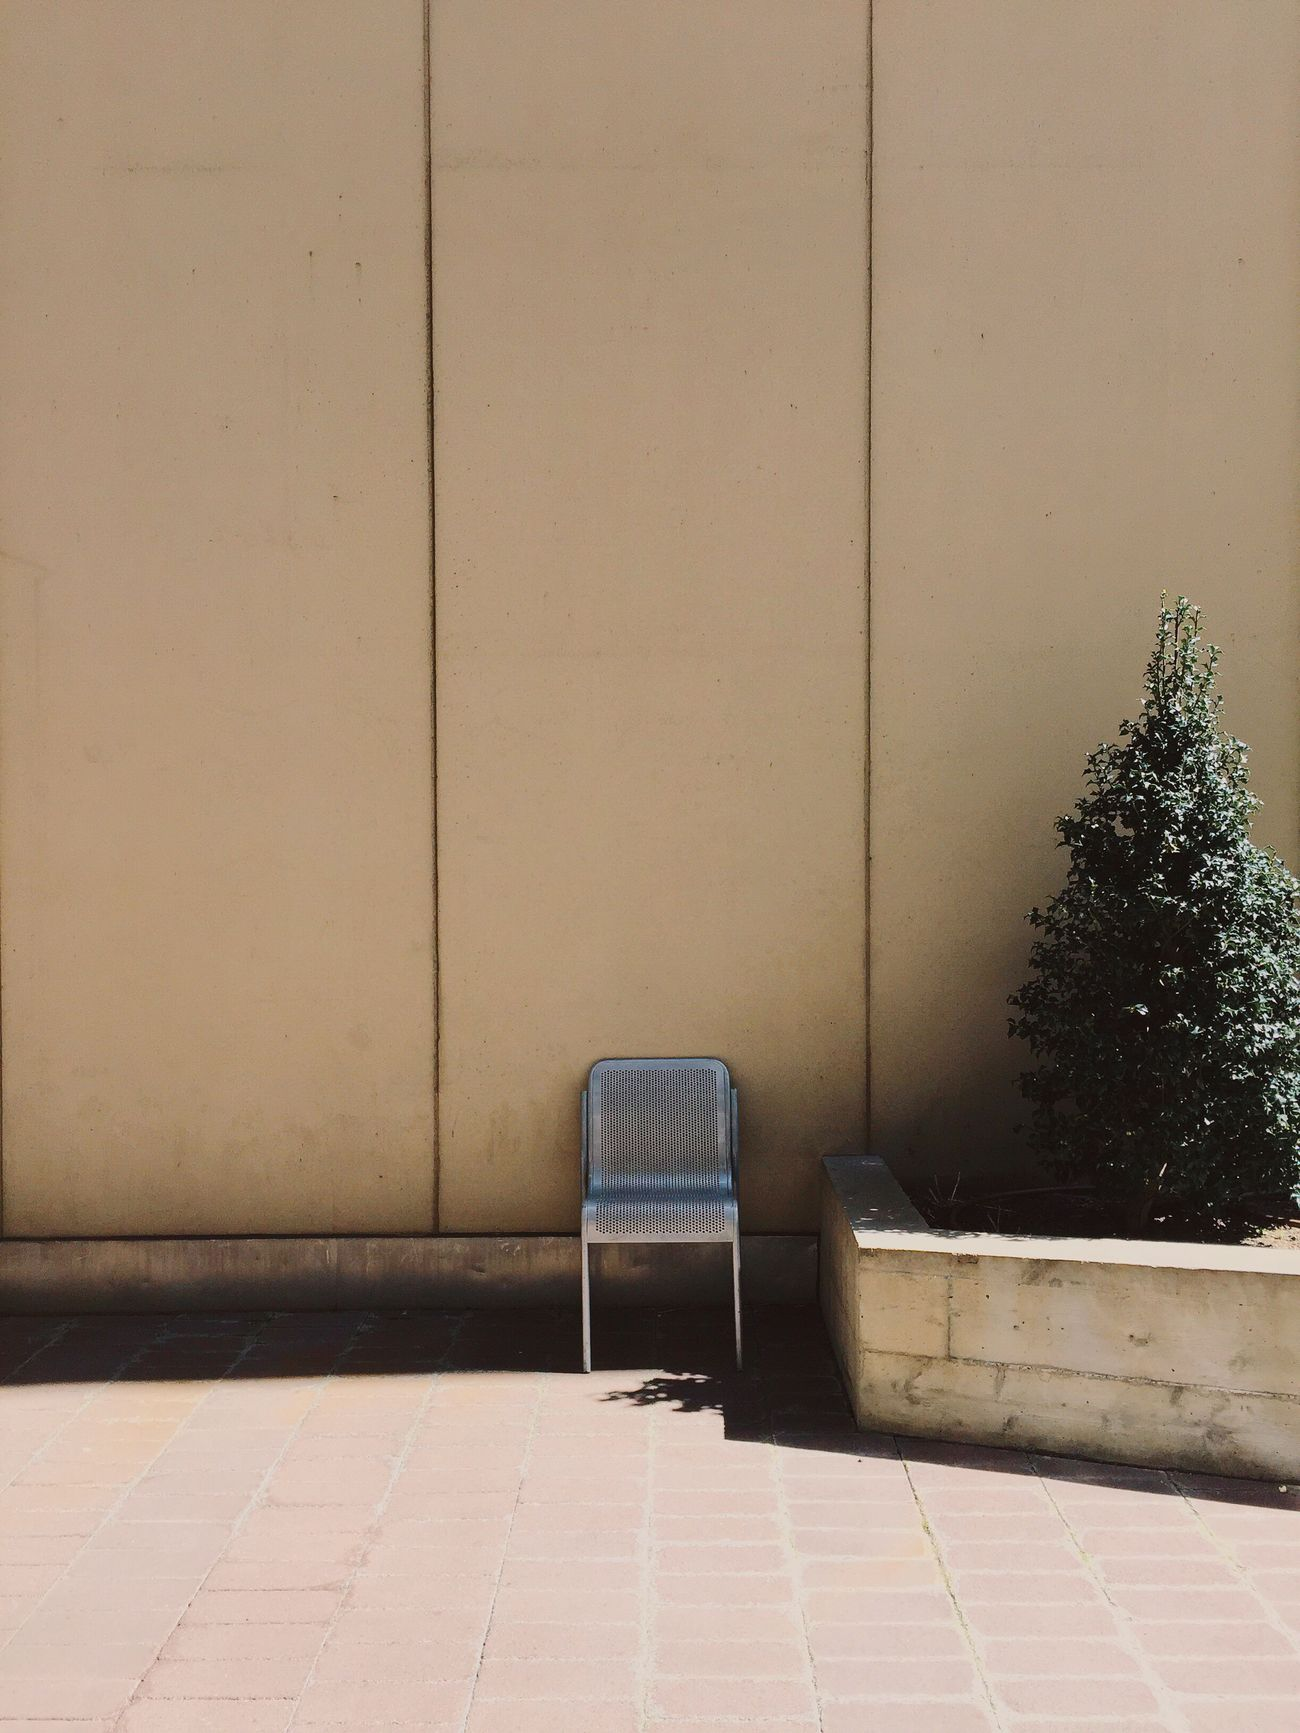 The last bit of shade. • Minimalism Minimalobsession Minimalmood Wall Chair Lonely Objects No People Lines Shade Mood Mood Captures EyeEm Deutschland Getting Away From It All Urbanexploration Silence